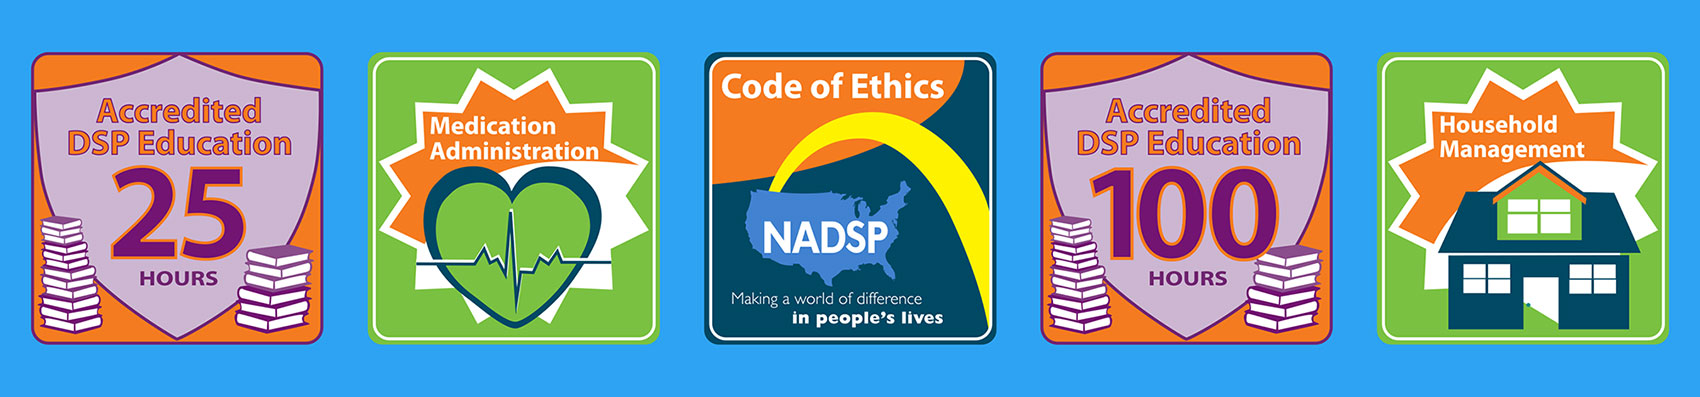 NADSP-E-Badge-Set-Of-Five-082217-1.jpg